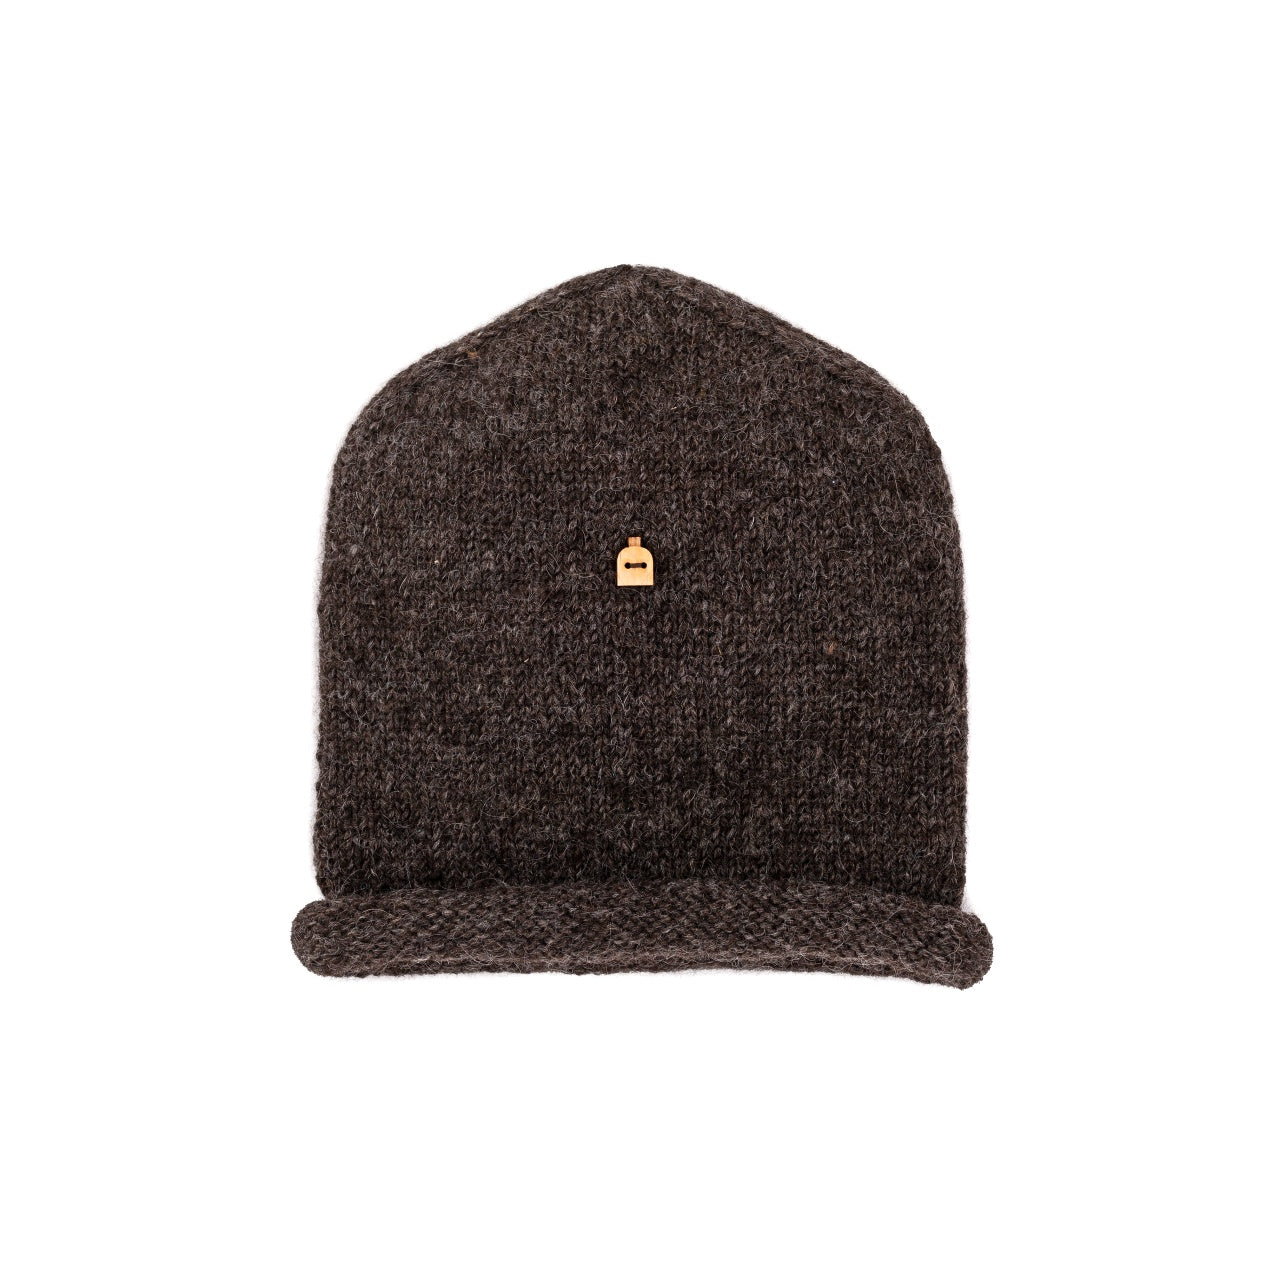 Hiili Country Casual Beanie